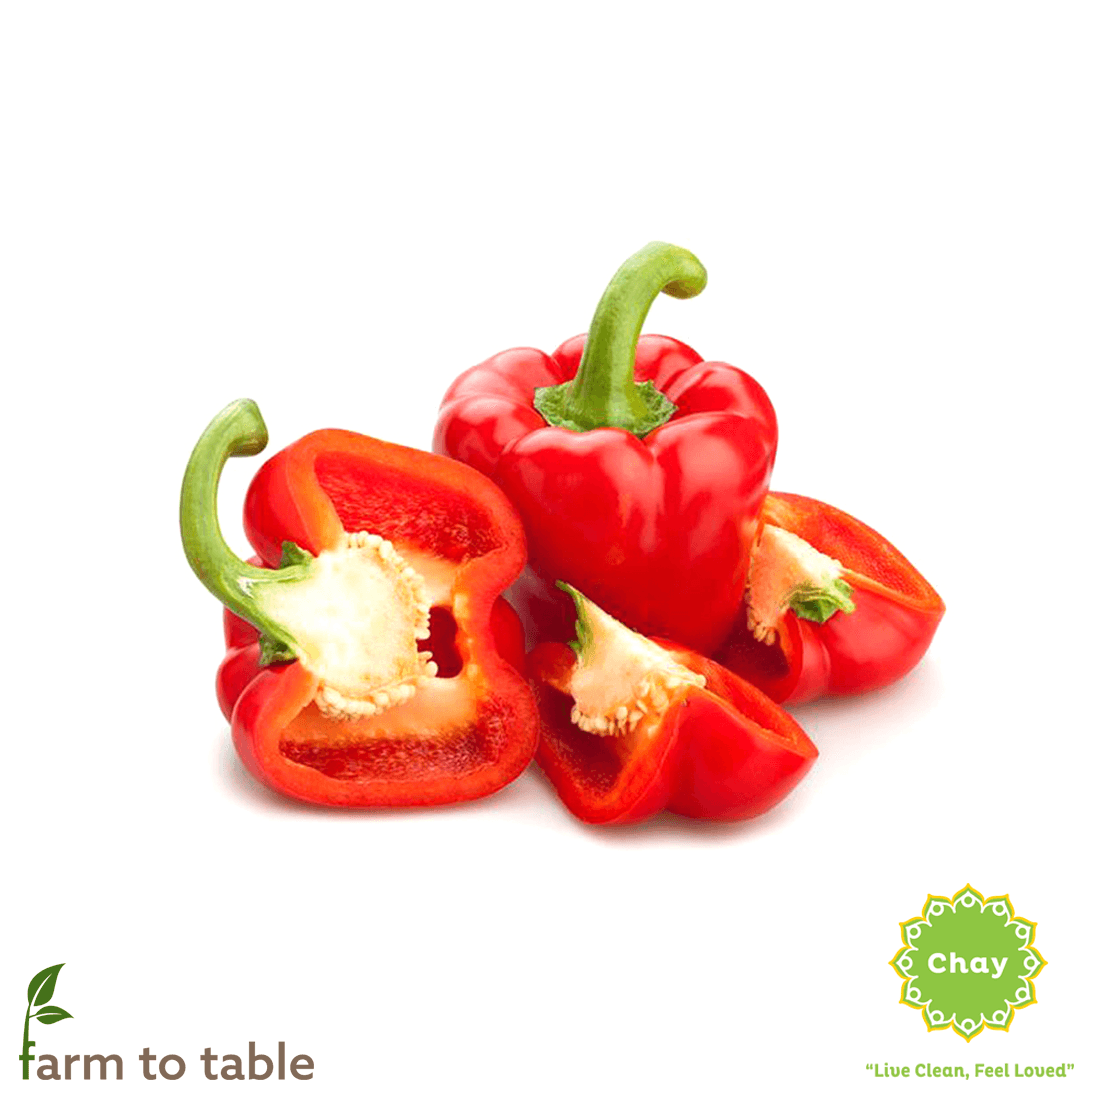 Red bell pepper 0,2 - 0,3 kg en House of Chay